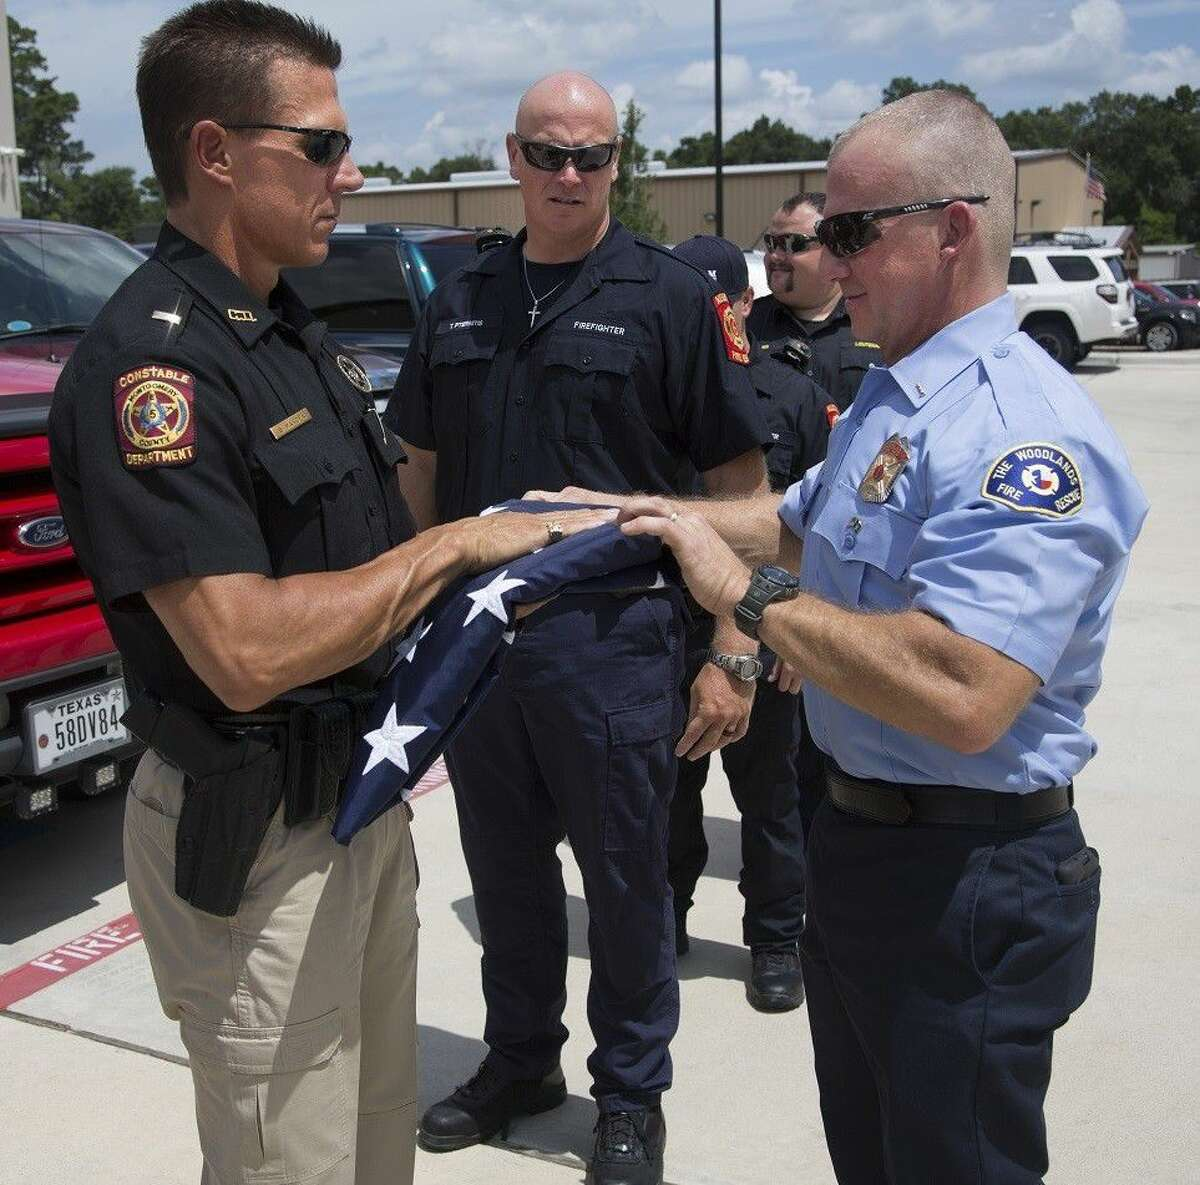 Saddle River Range recently held its inaugural First Responders Appreciation Day.